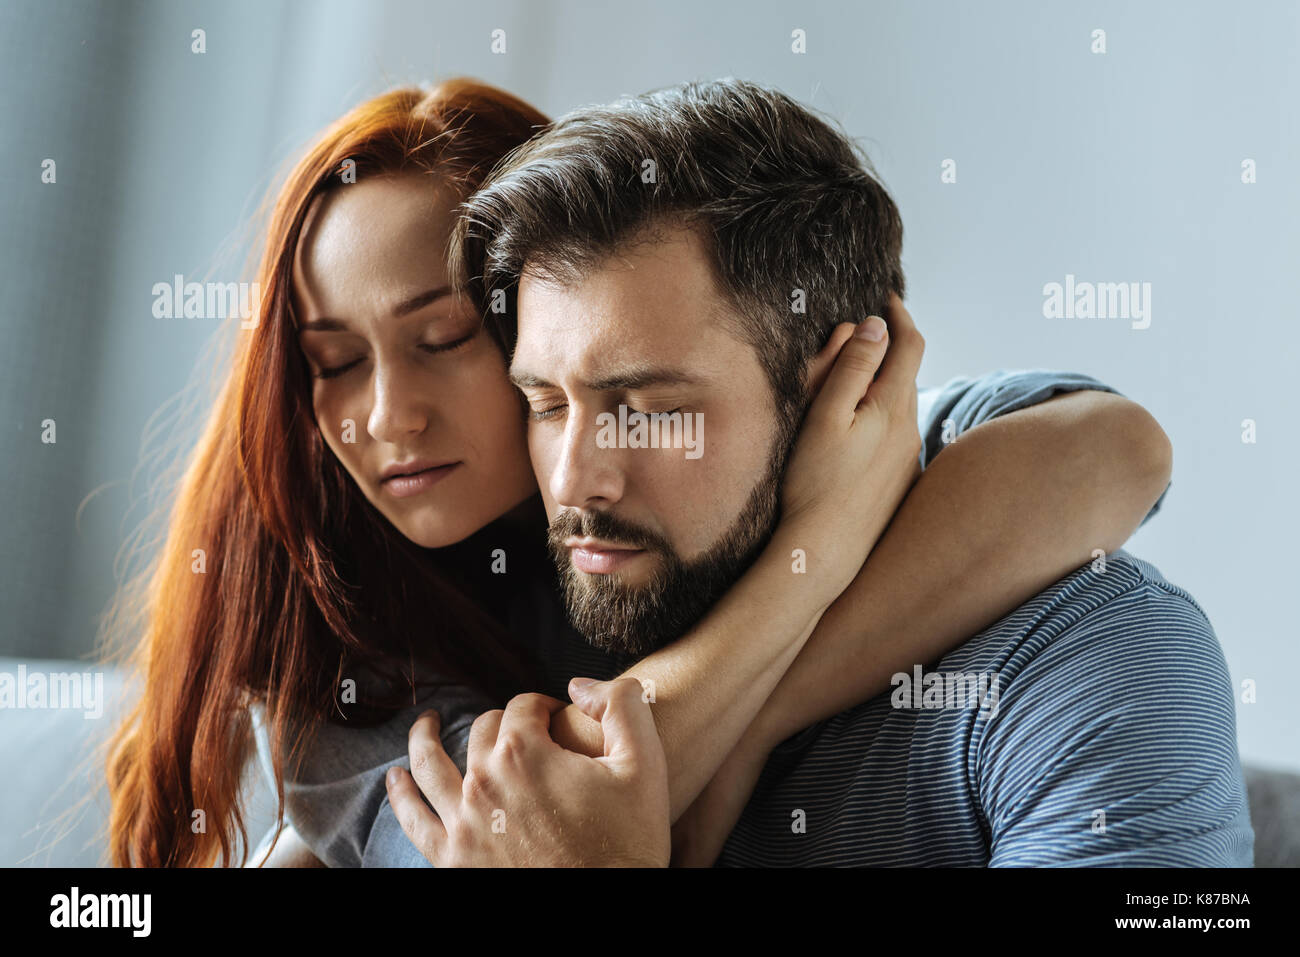 Pleasant Loving Couple Caring About Each Other Stock Photo Alamy